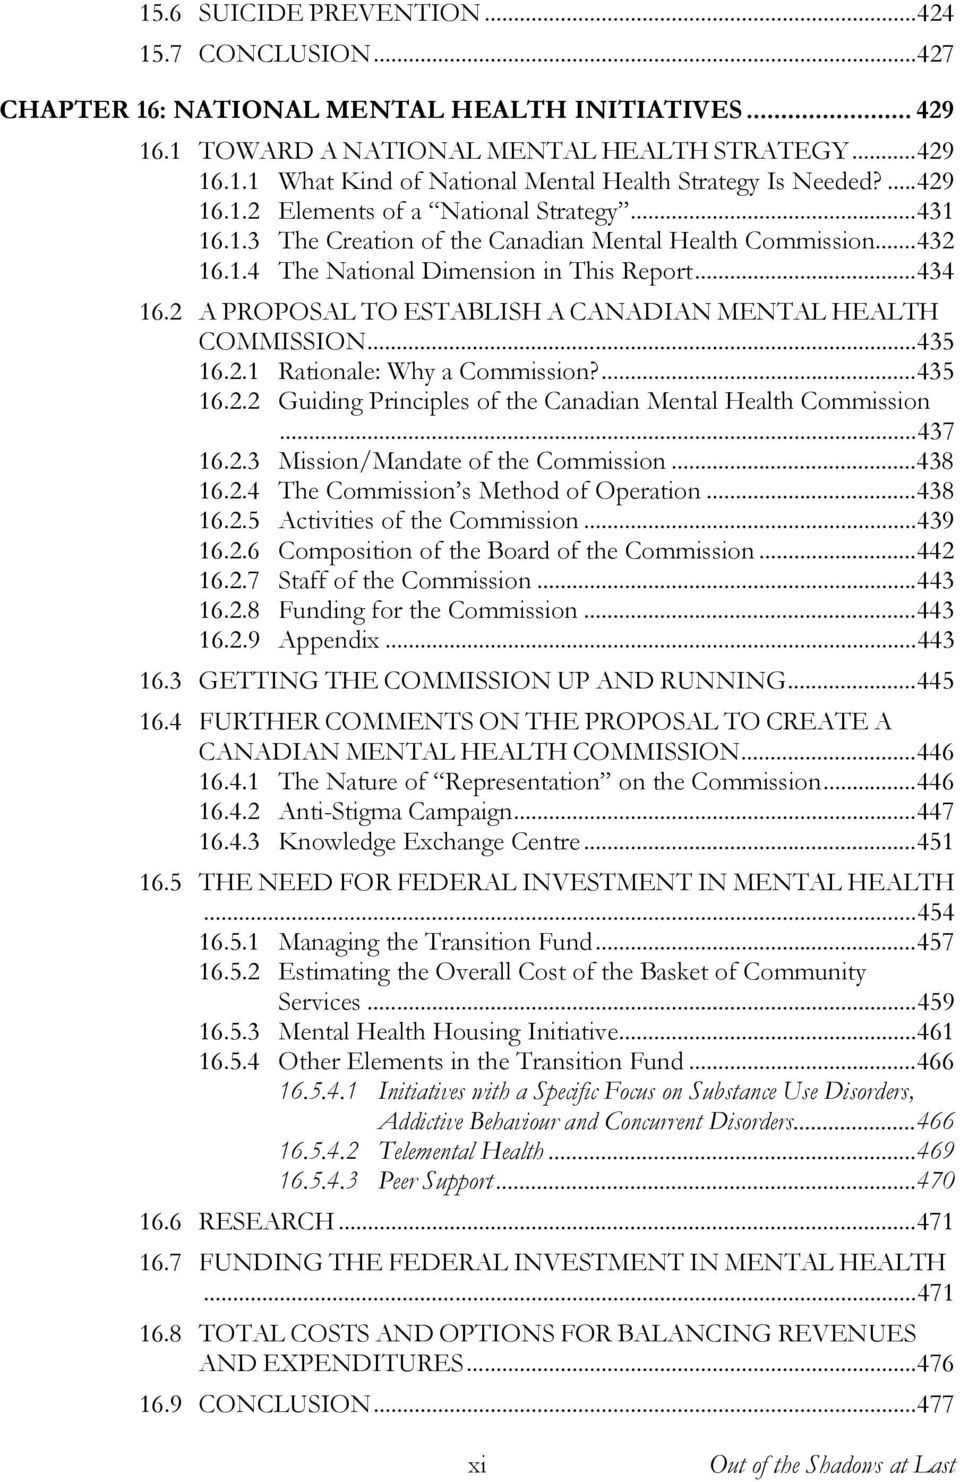 2 A PROPOSAL TO ESTABLISH A CANADIAN MENTAL HEALTH COMMISSION...435 16.2.1 Rationale: Why a Commission?...435 16.2.2 Guiding Principles of the Canadian Mental Health Commission...437 16.2.3 Mission/Mandate of the Commission.